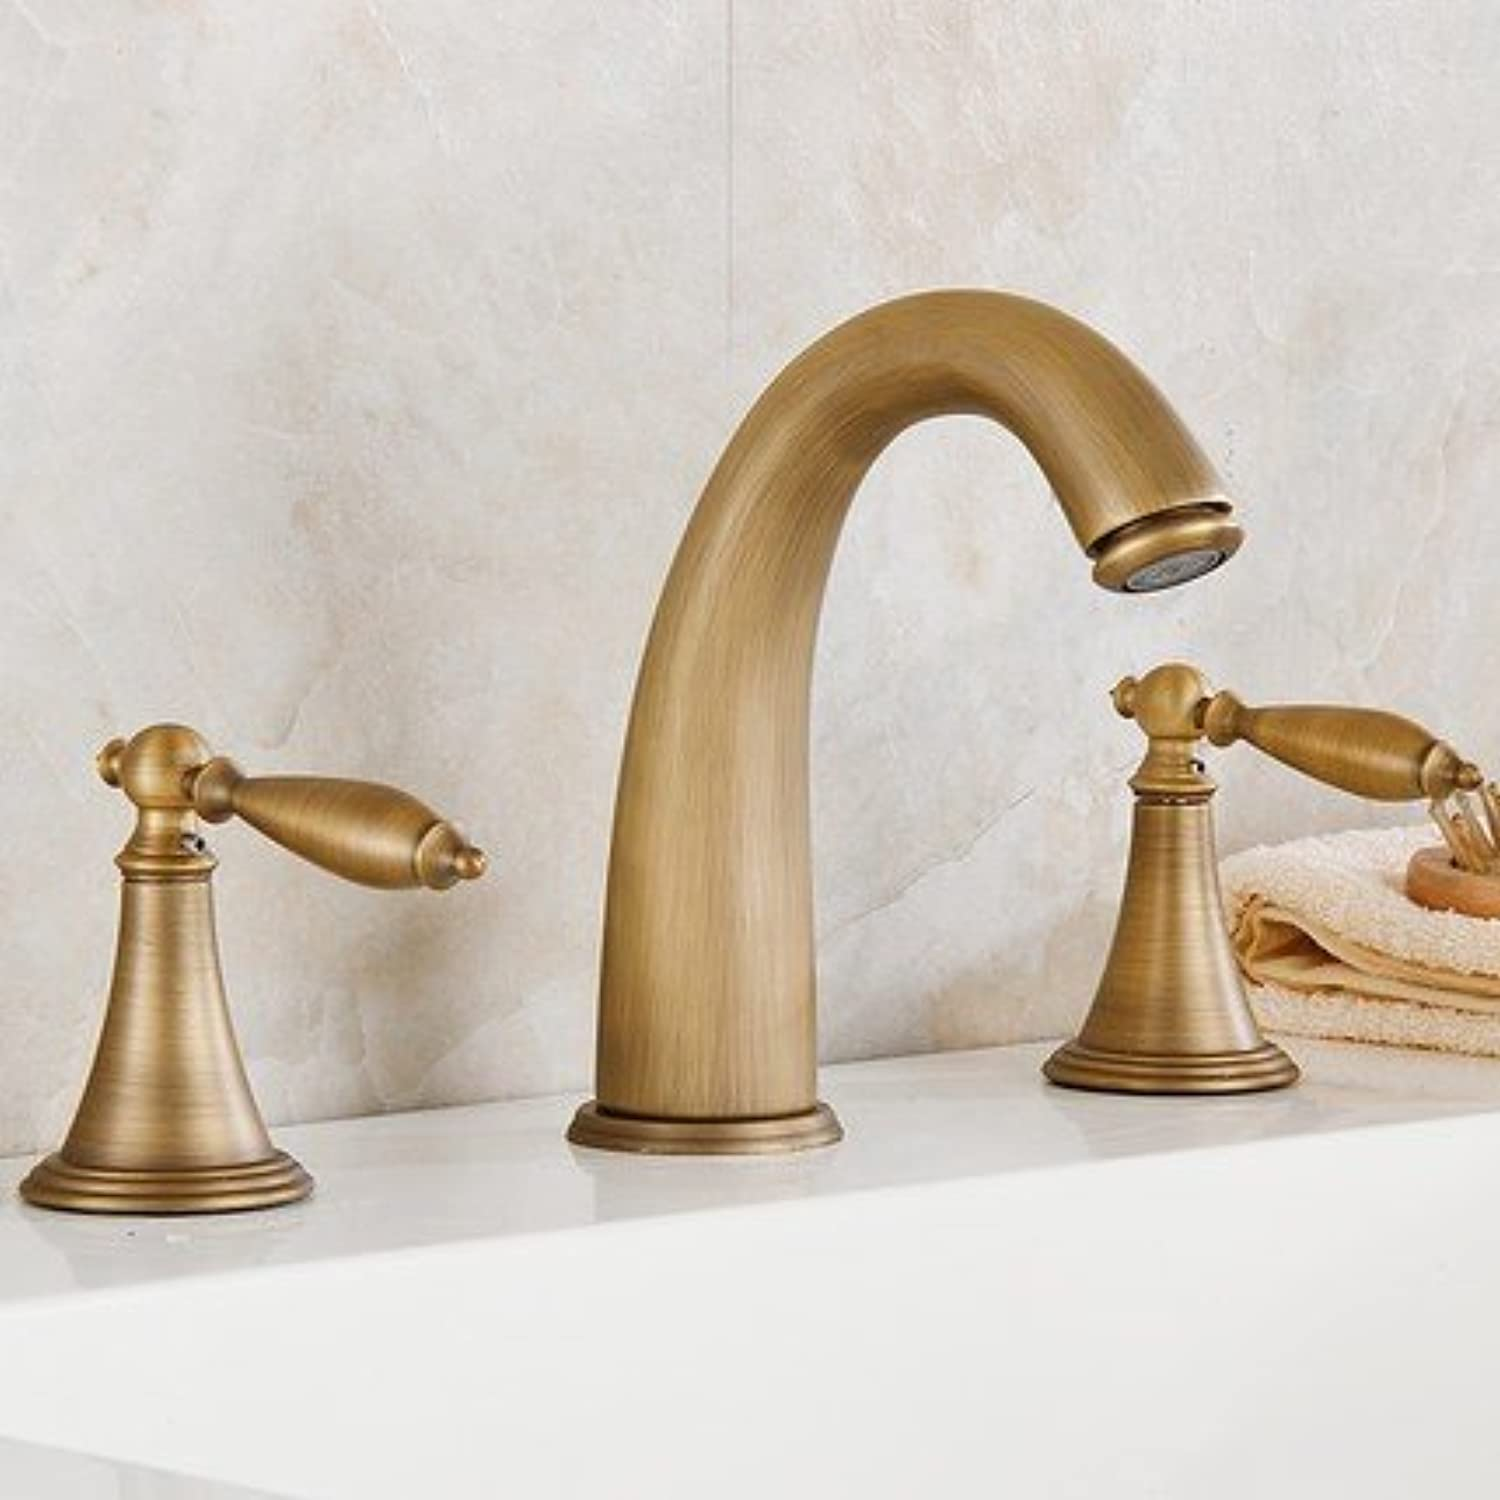 European antique three-hole basin faucet copper set of hot and cold water faucet